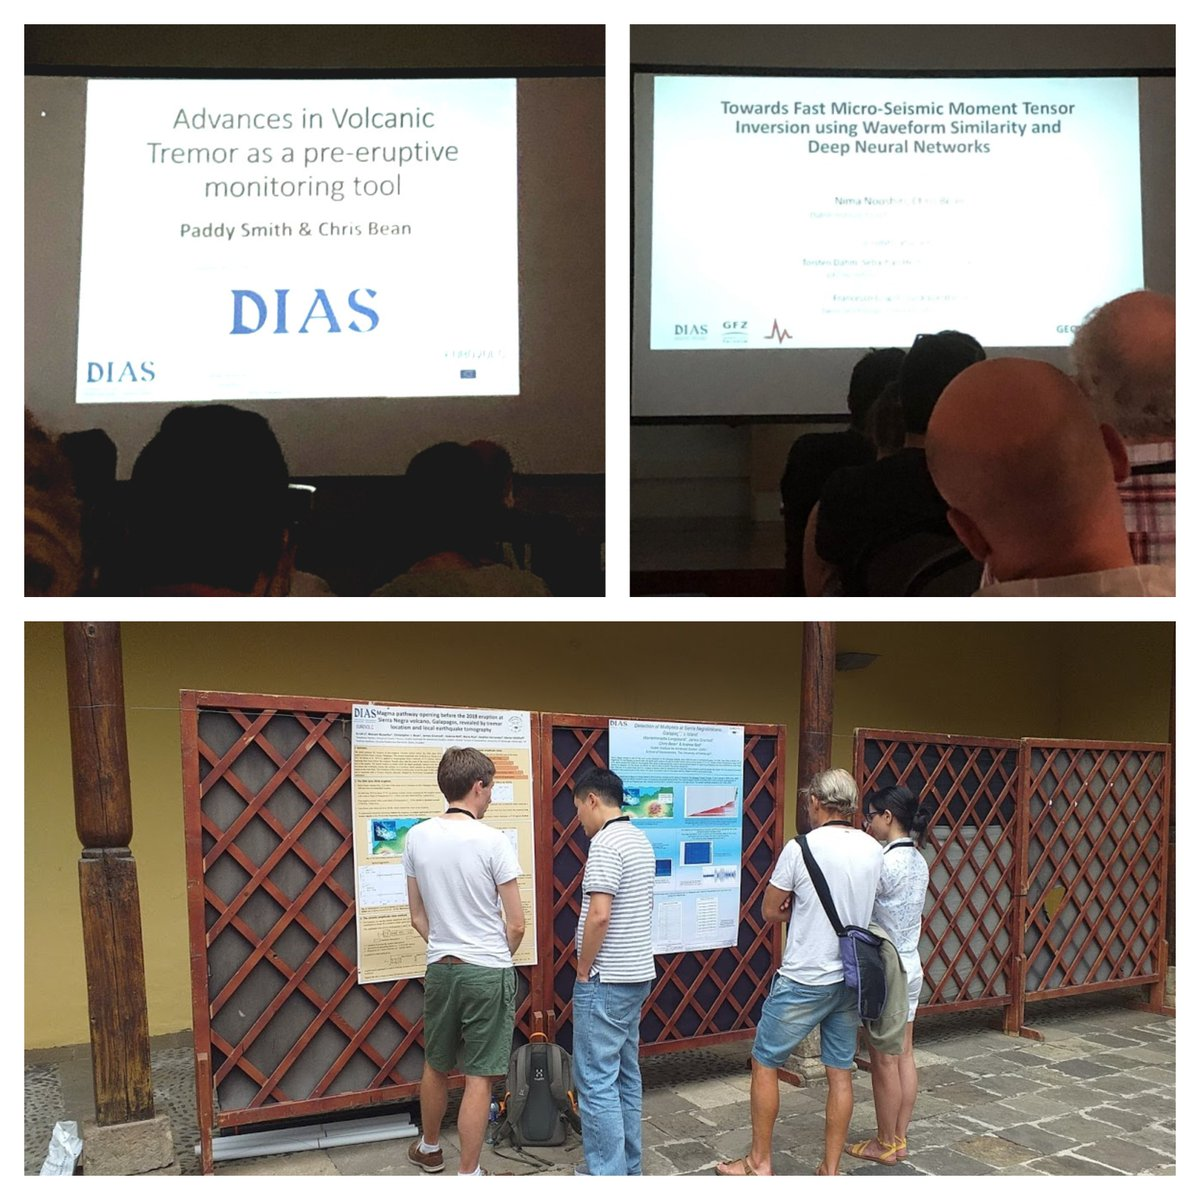 test Twitter Media - Volcano-seismologists from @DIAS_Dublin in Gacachico, Tenerife attending the IAVCEI workshop where they made presentations about their ongoing research. #DIASdiscovers https://t.co/icXxQFjBcc